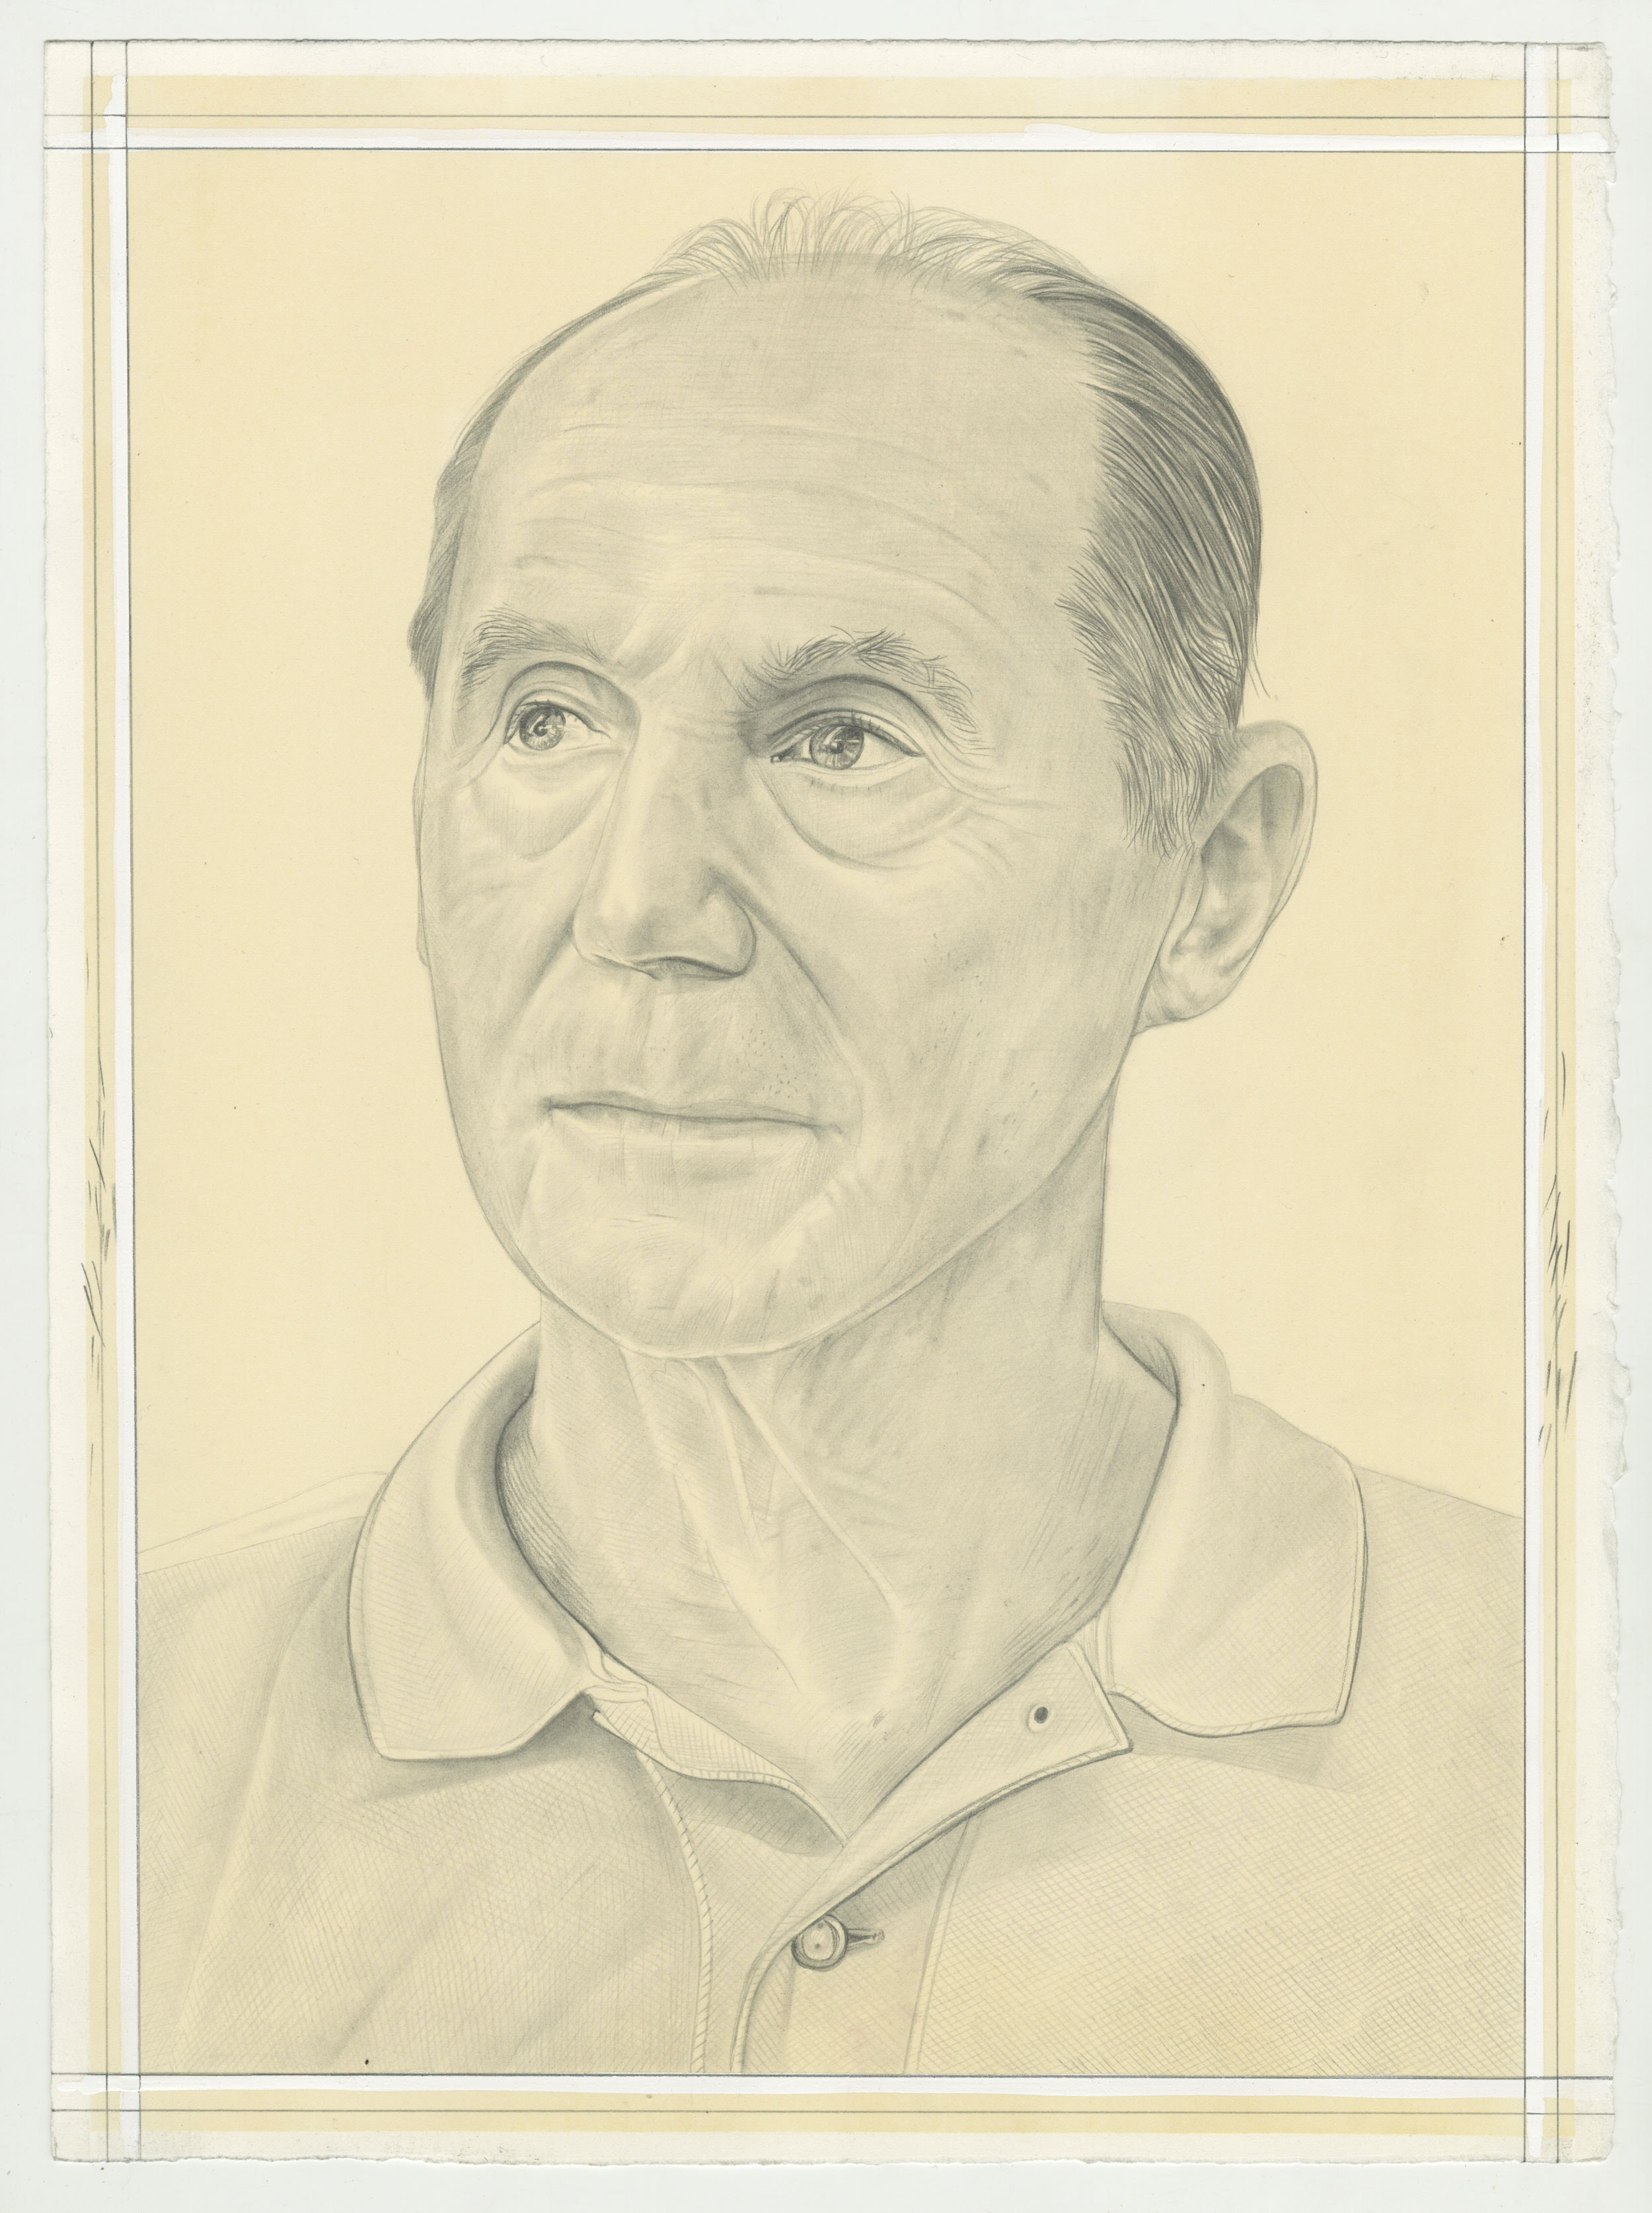 Bill Goldston. Pencil on Paper by Phong Bui.